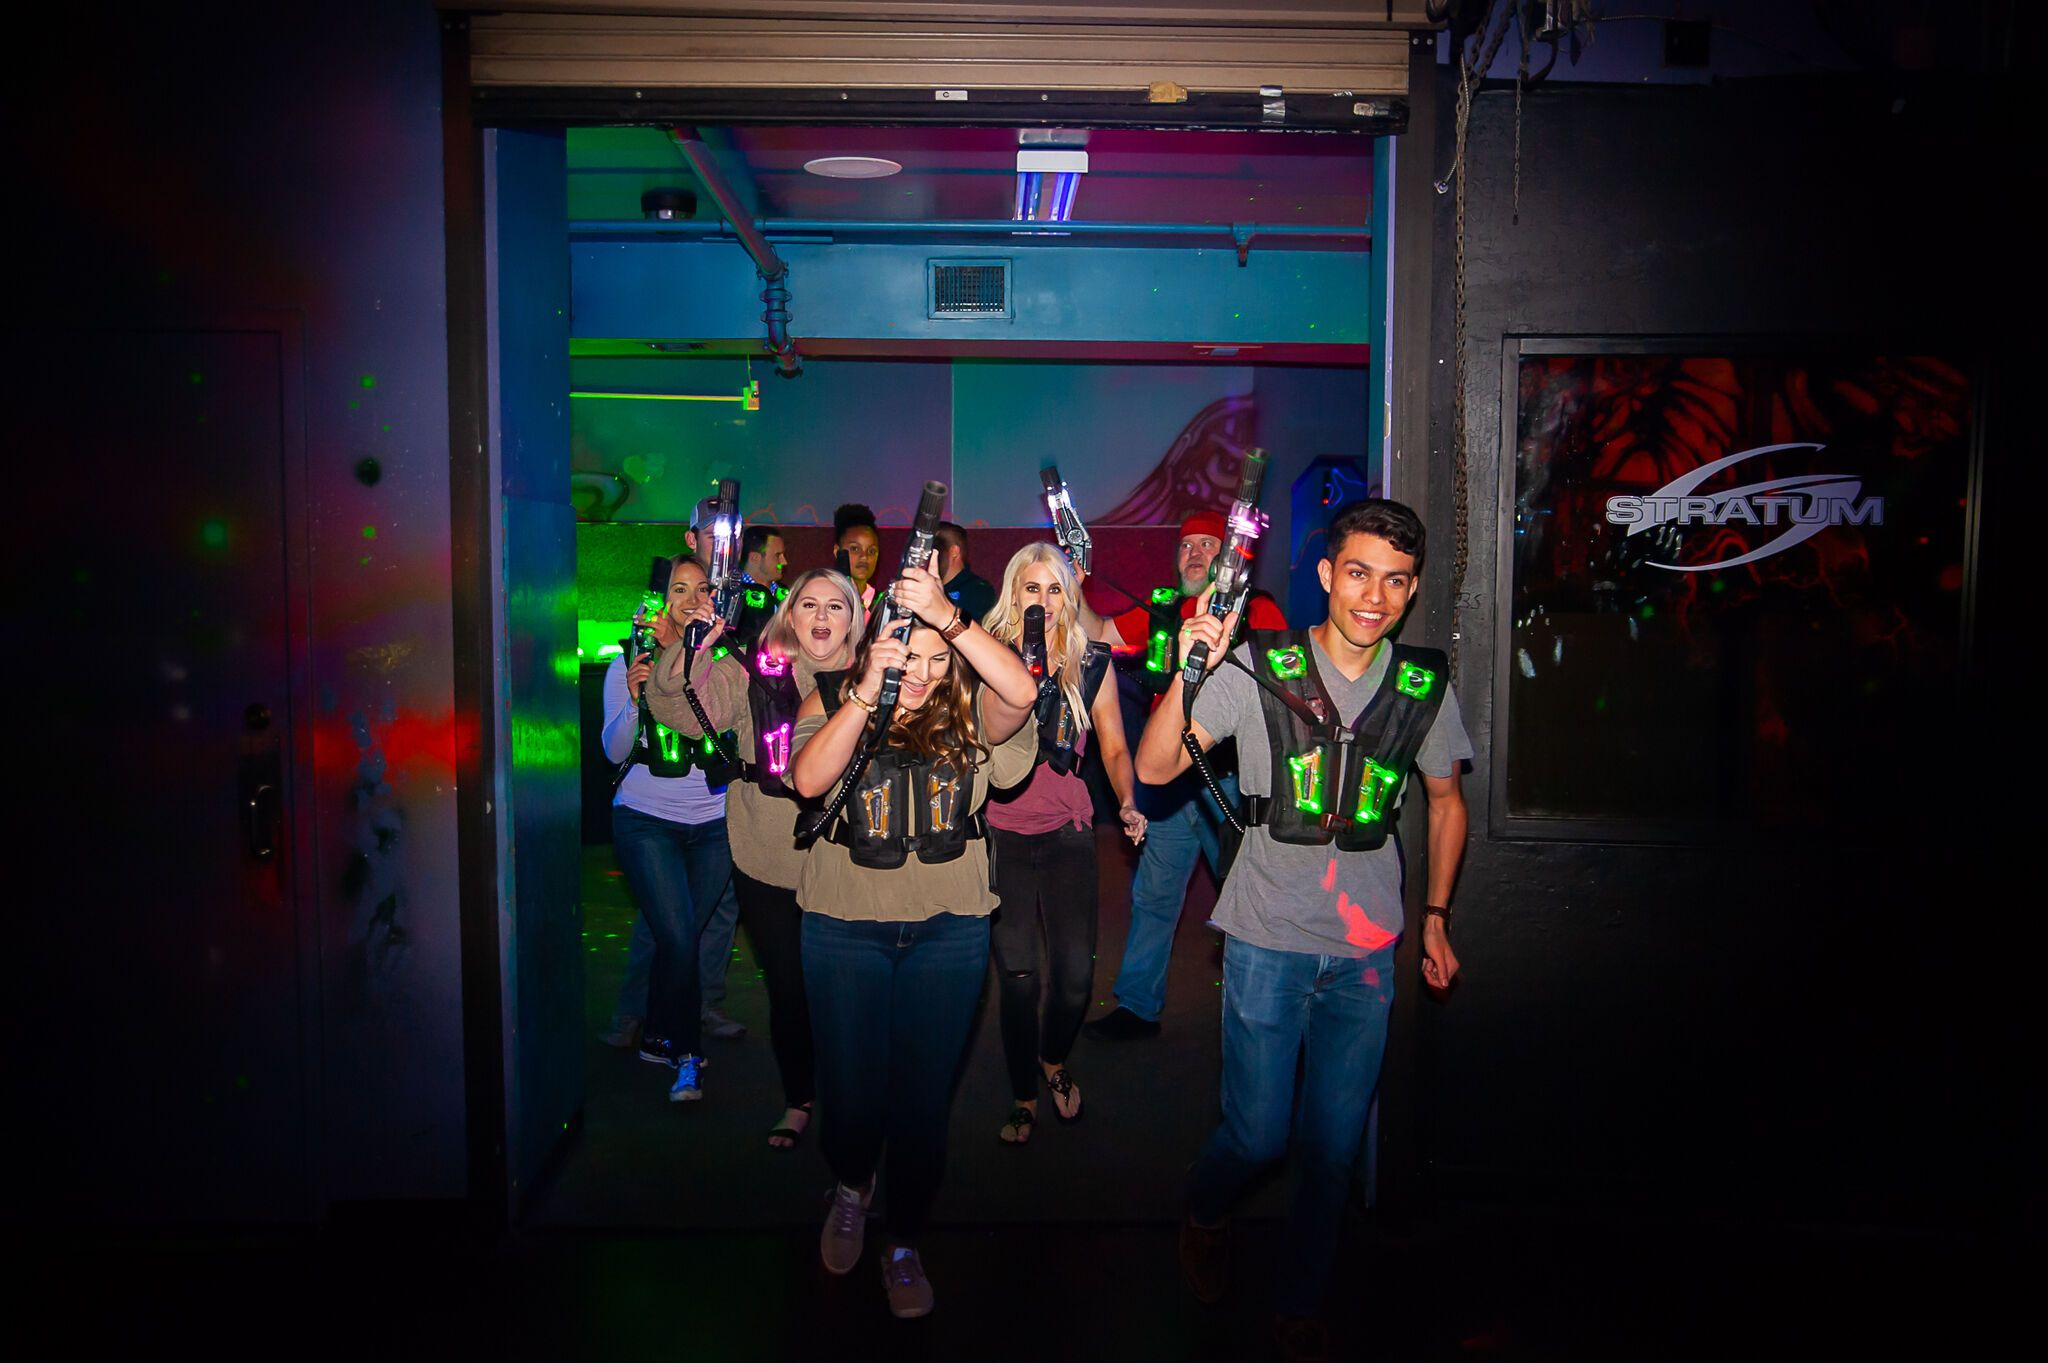 Too Much Turkey Tag Some Of That Turkey Right Off With Lasertag Fun Use Code Bf50 Stratumlasertag Stratum Lasertag Tag Arizona Events Mesa Az Laser Tag